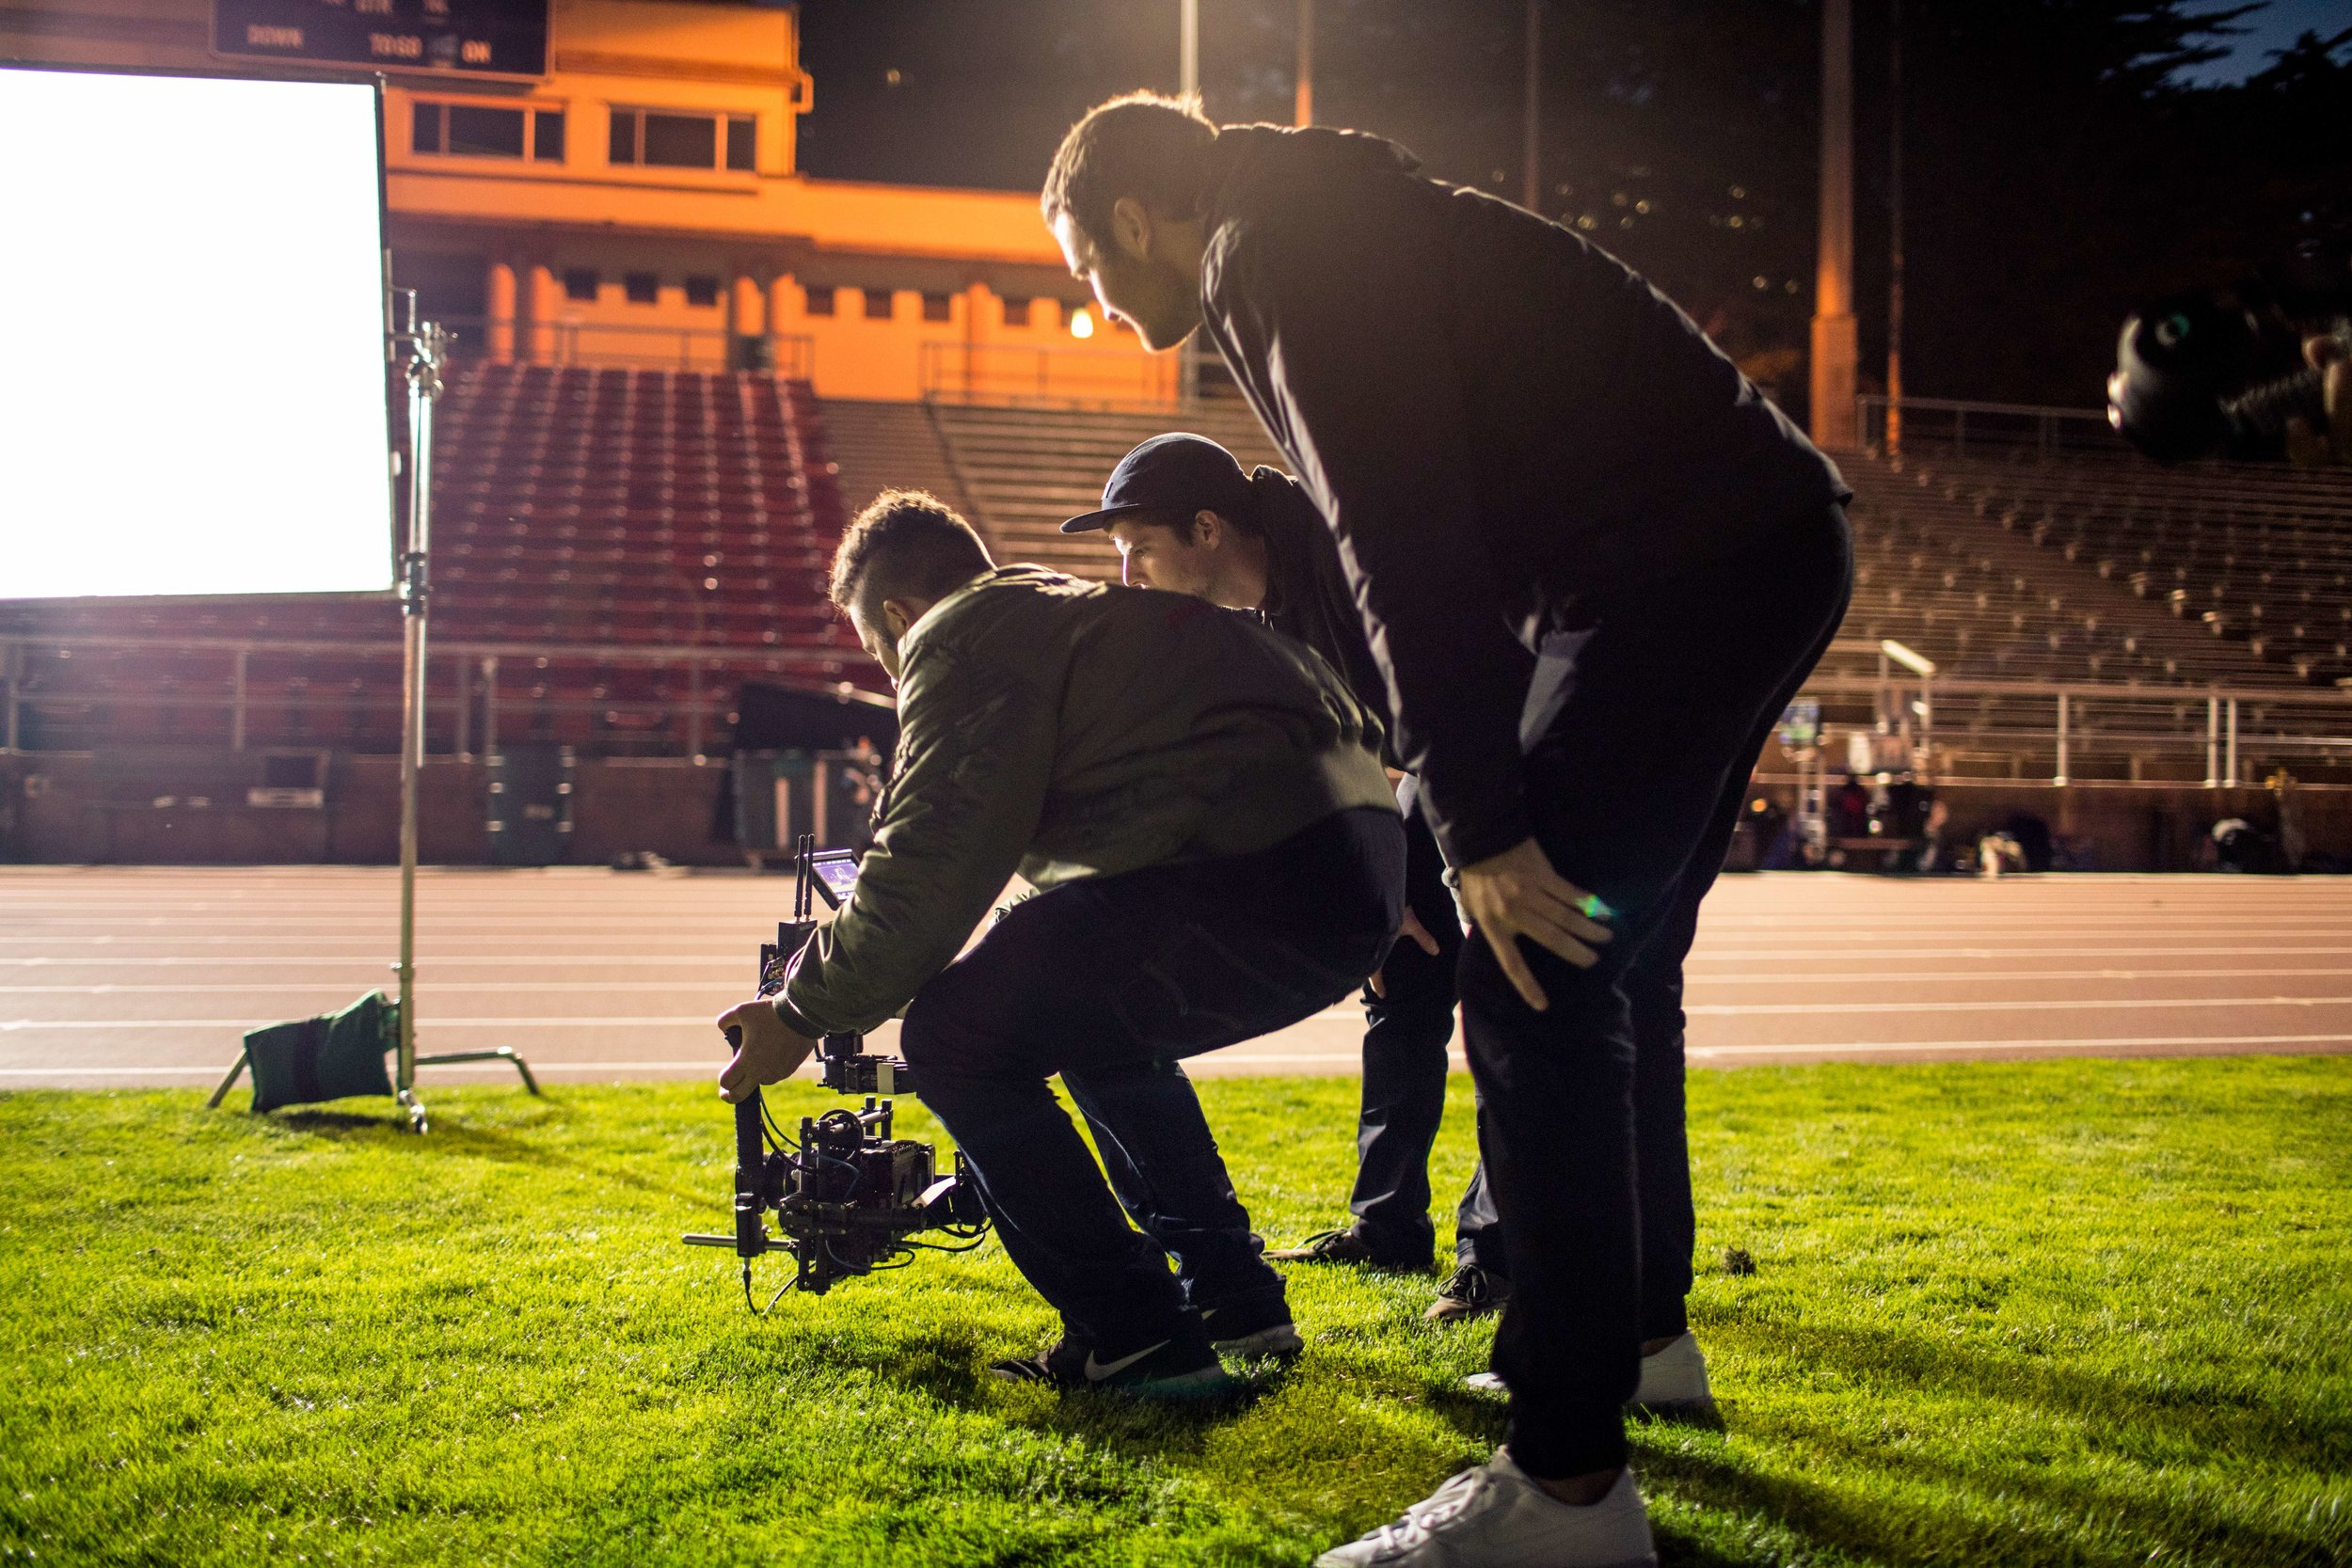 Low angle push in with the movi